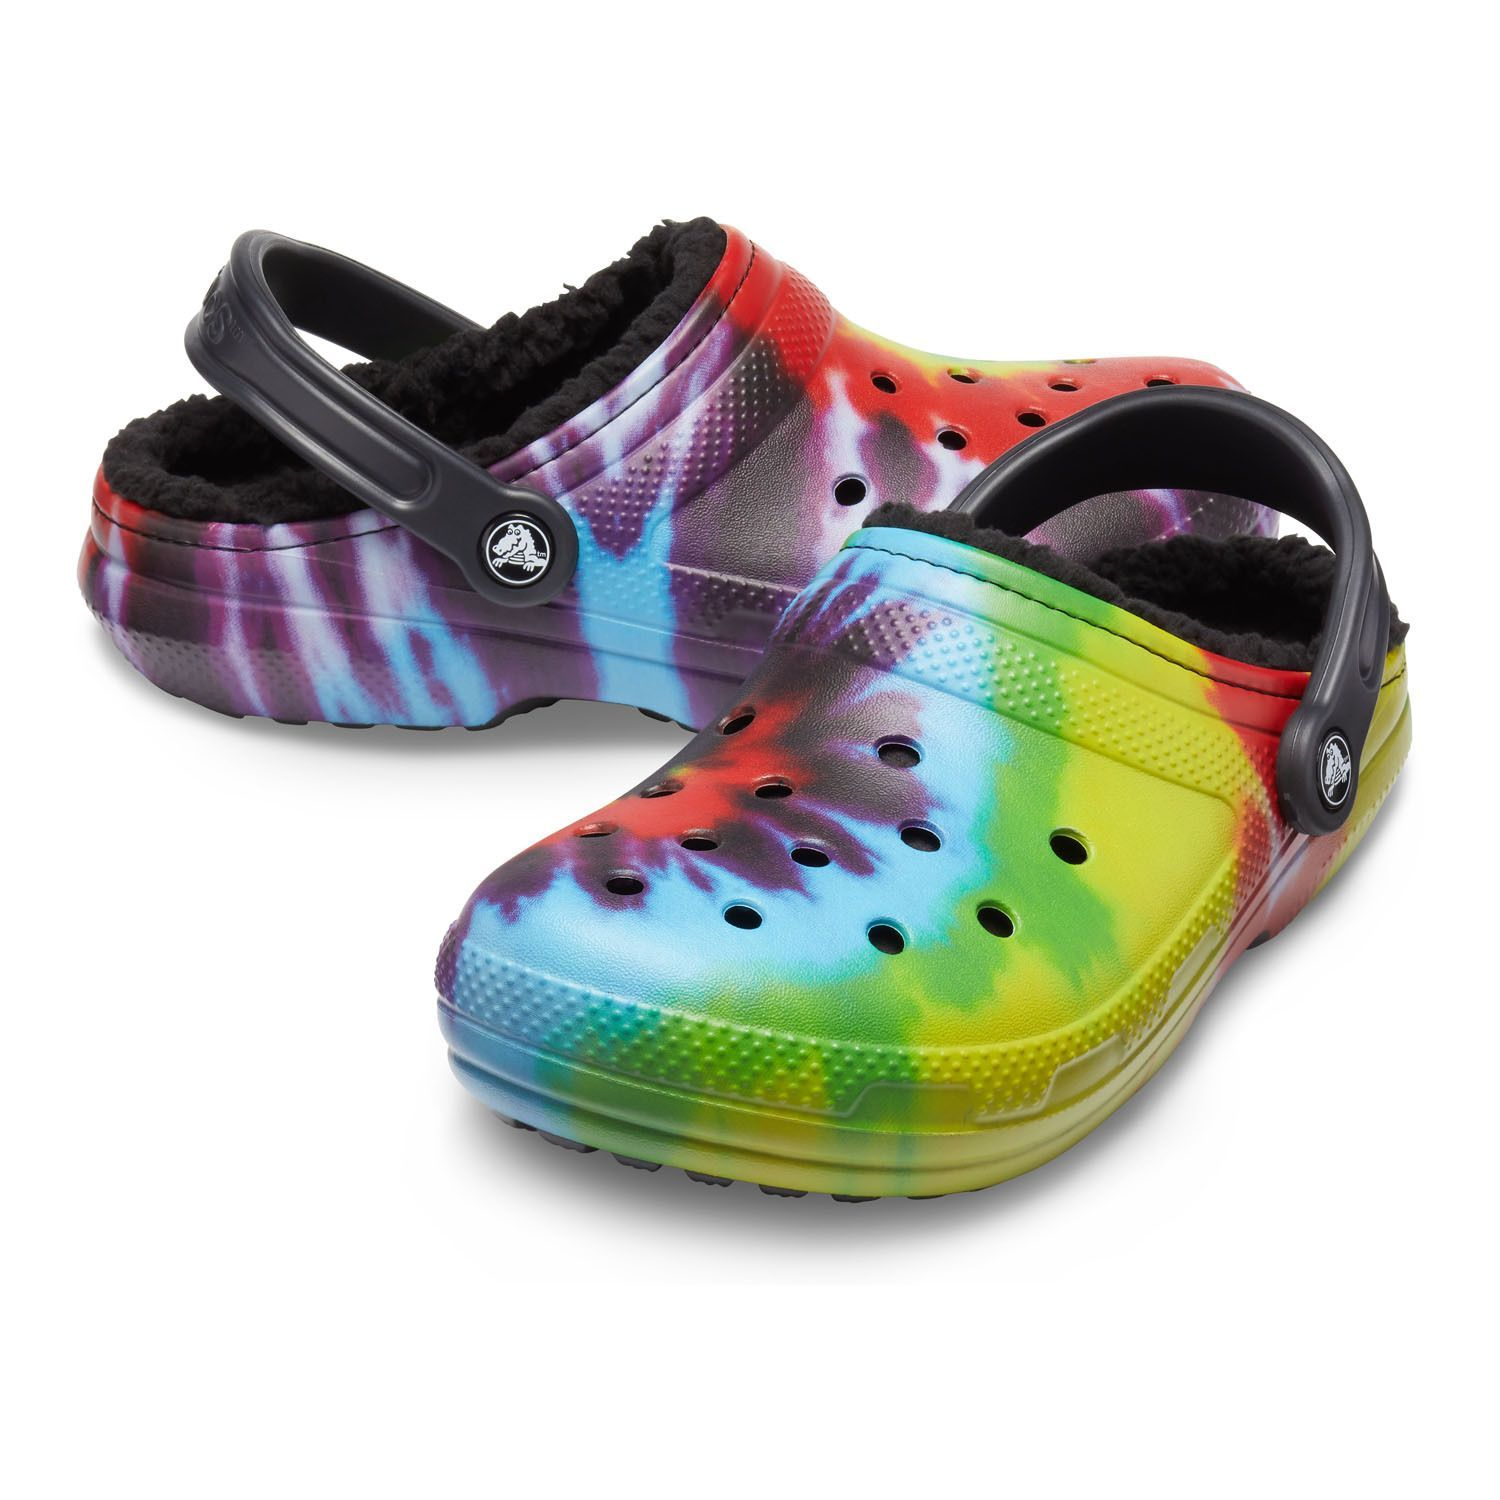 Cozy up to 15% off Crocs at Kohl's